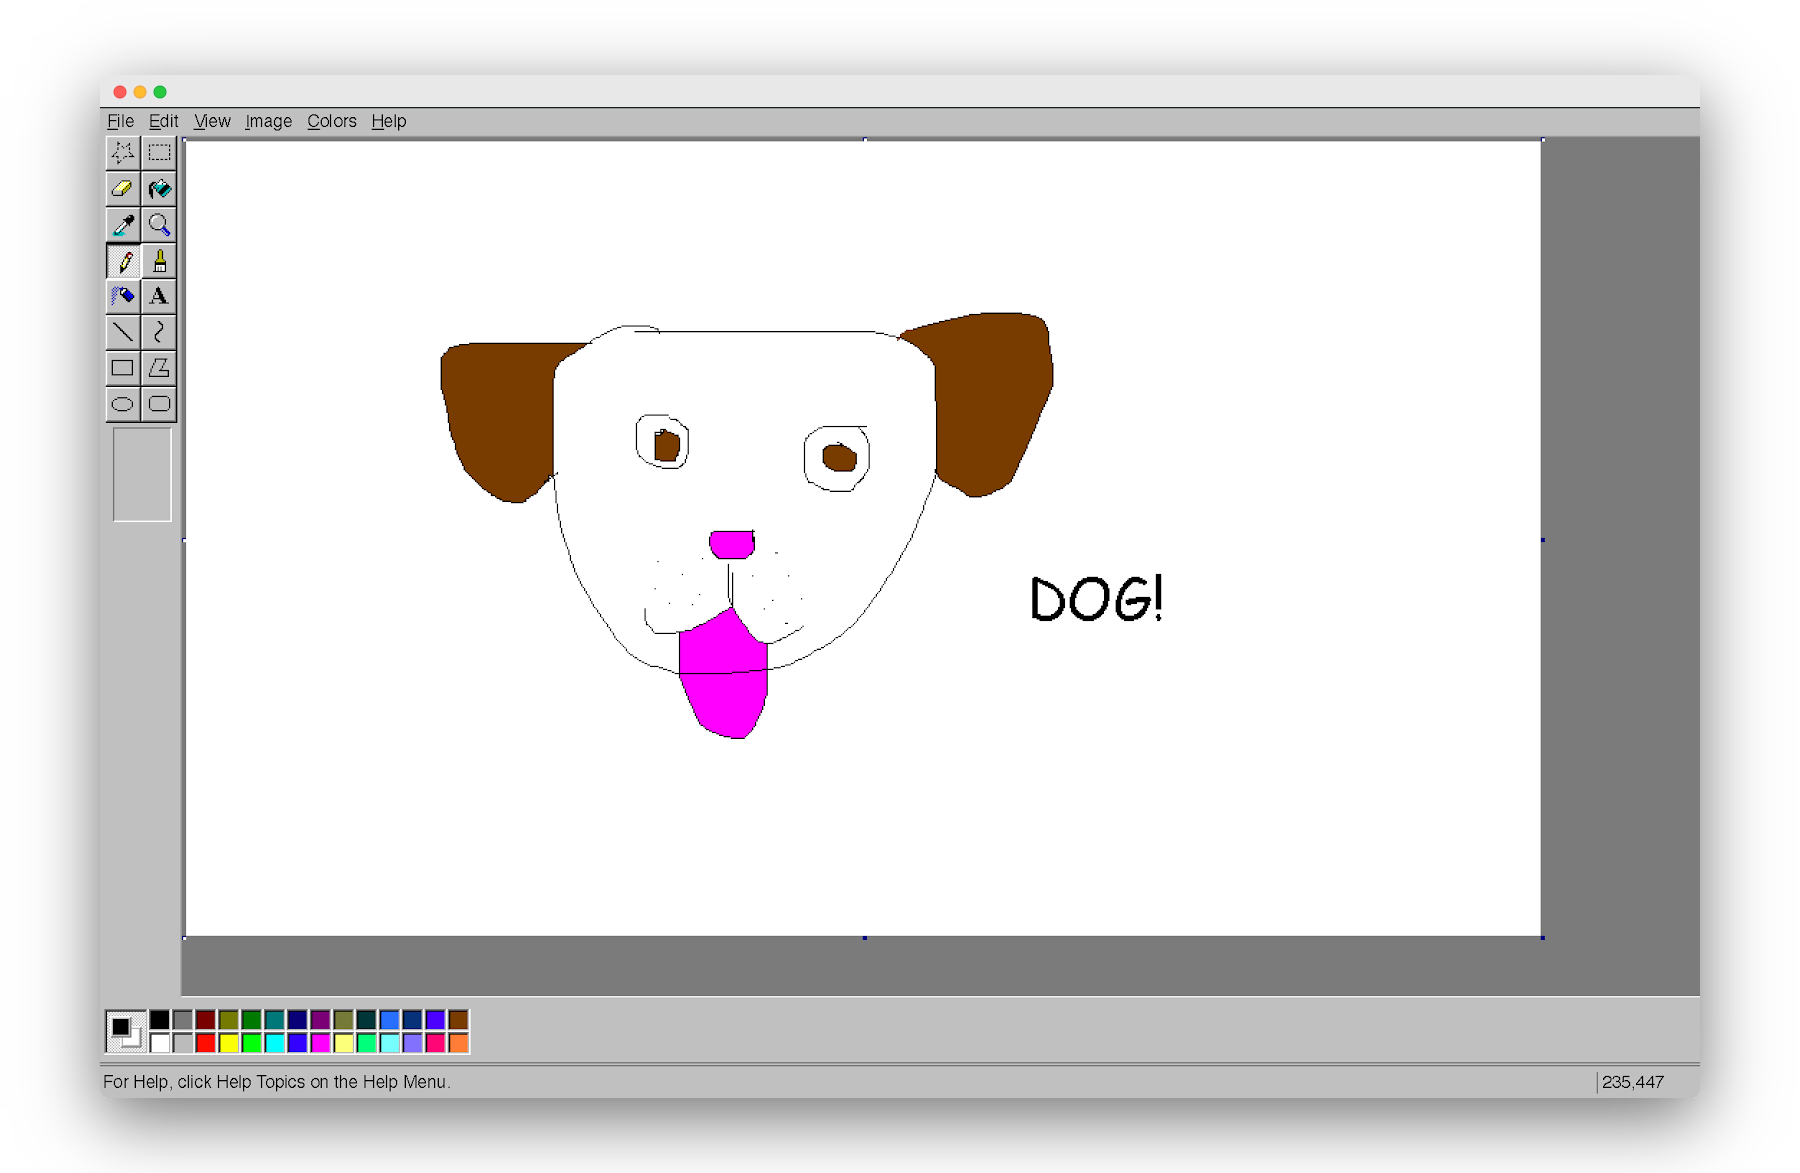 rough image of a dog drawn in Paint